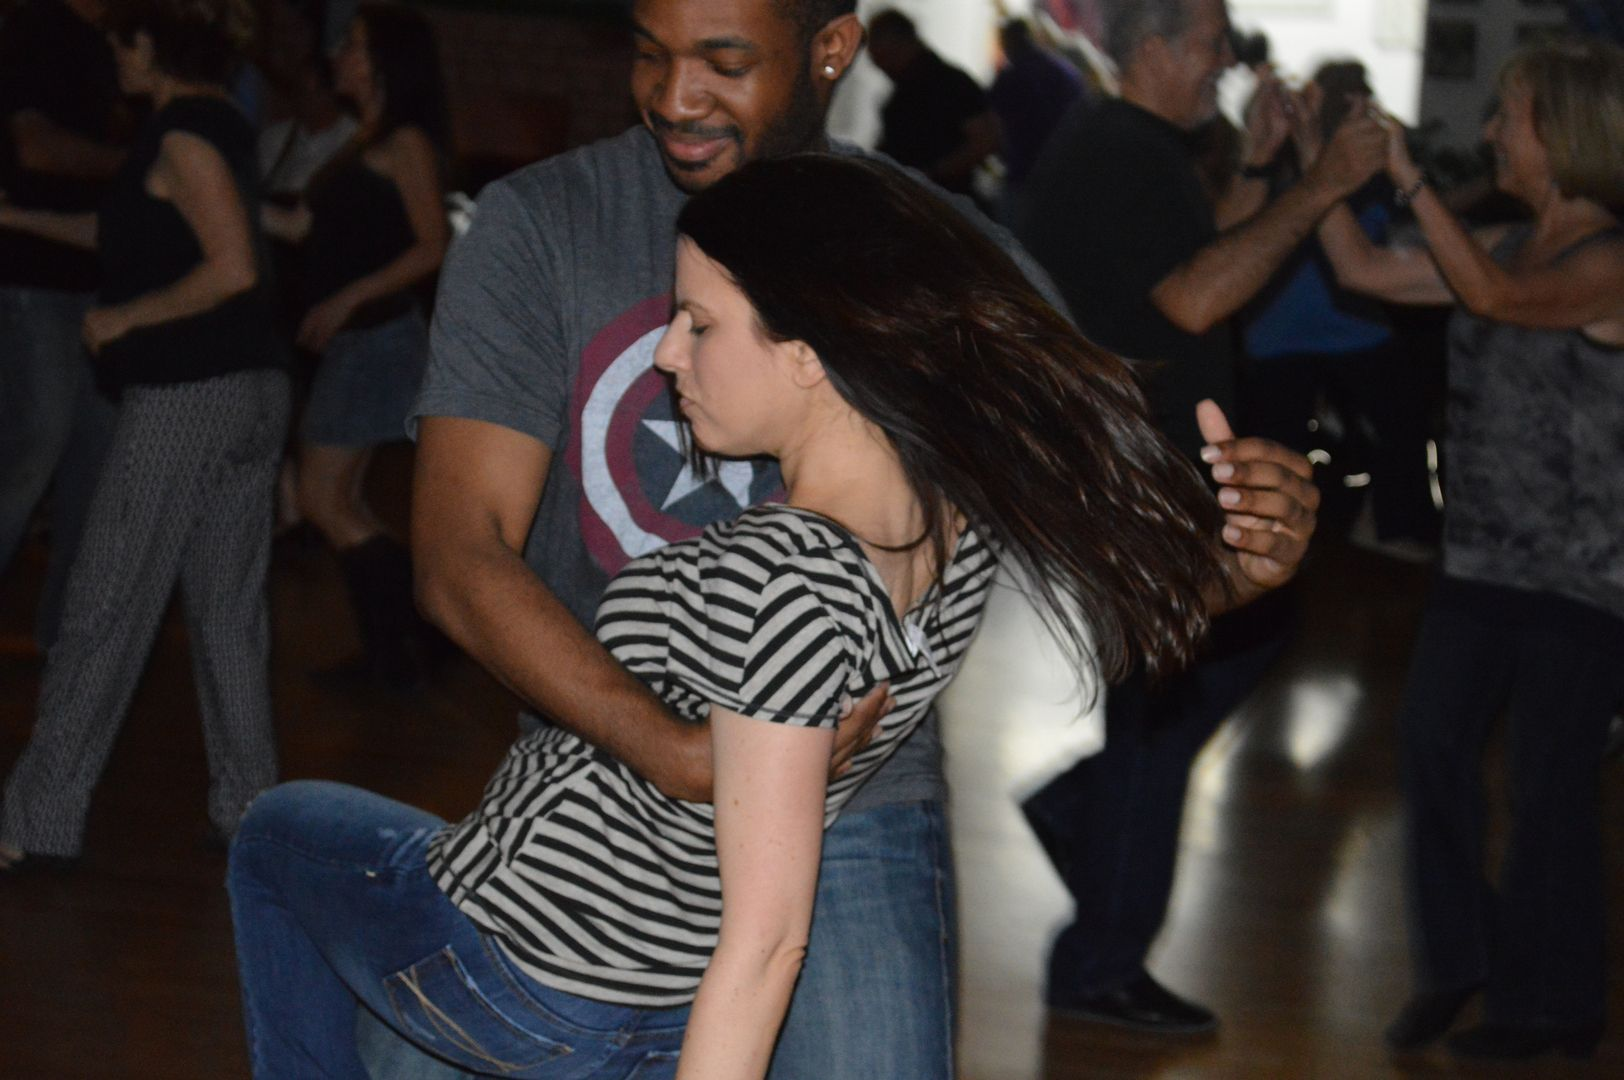 Swing dancing looks like so much fun how cool is it that